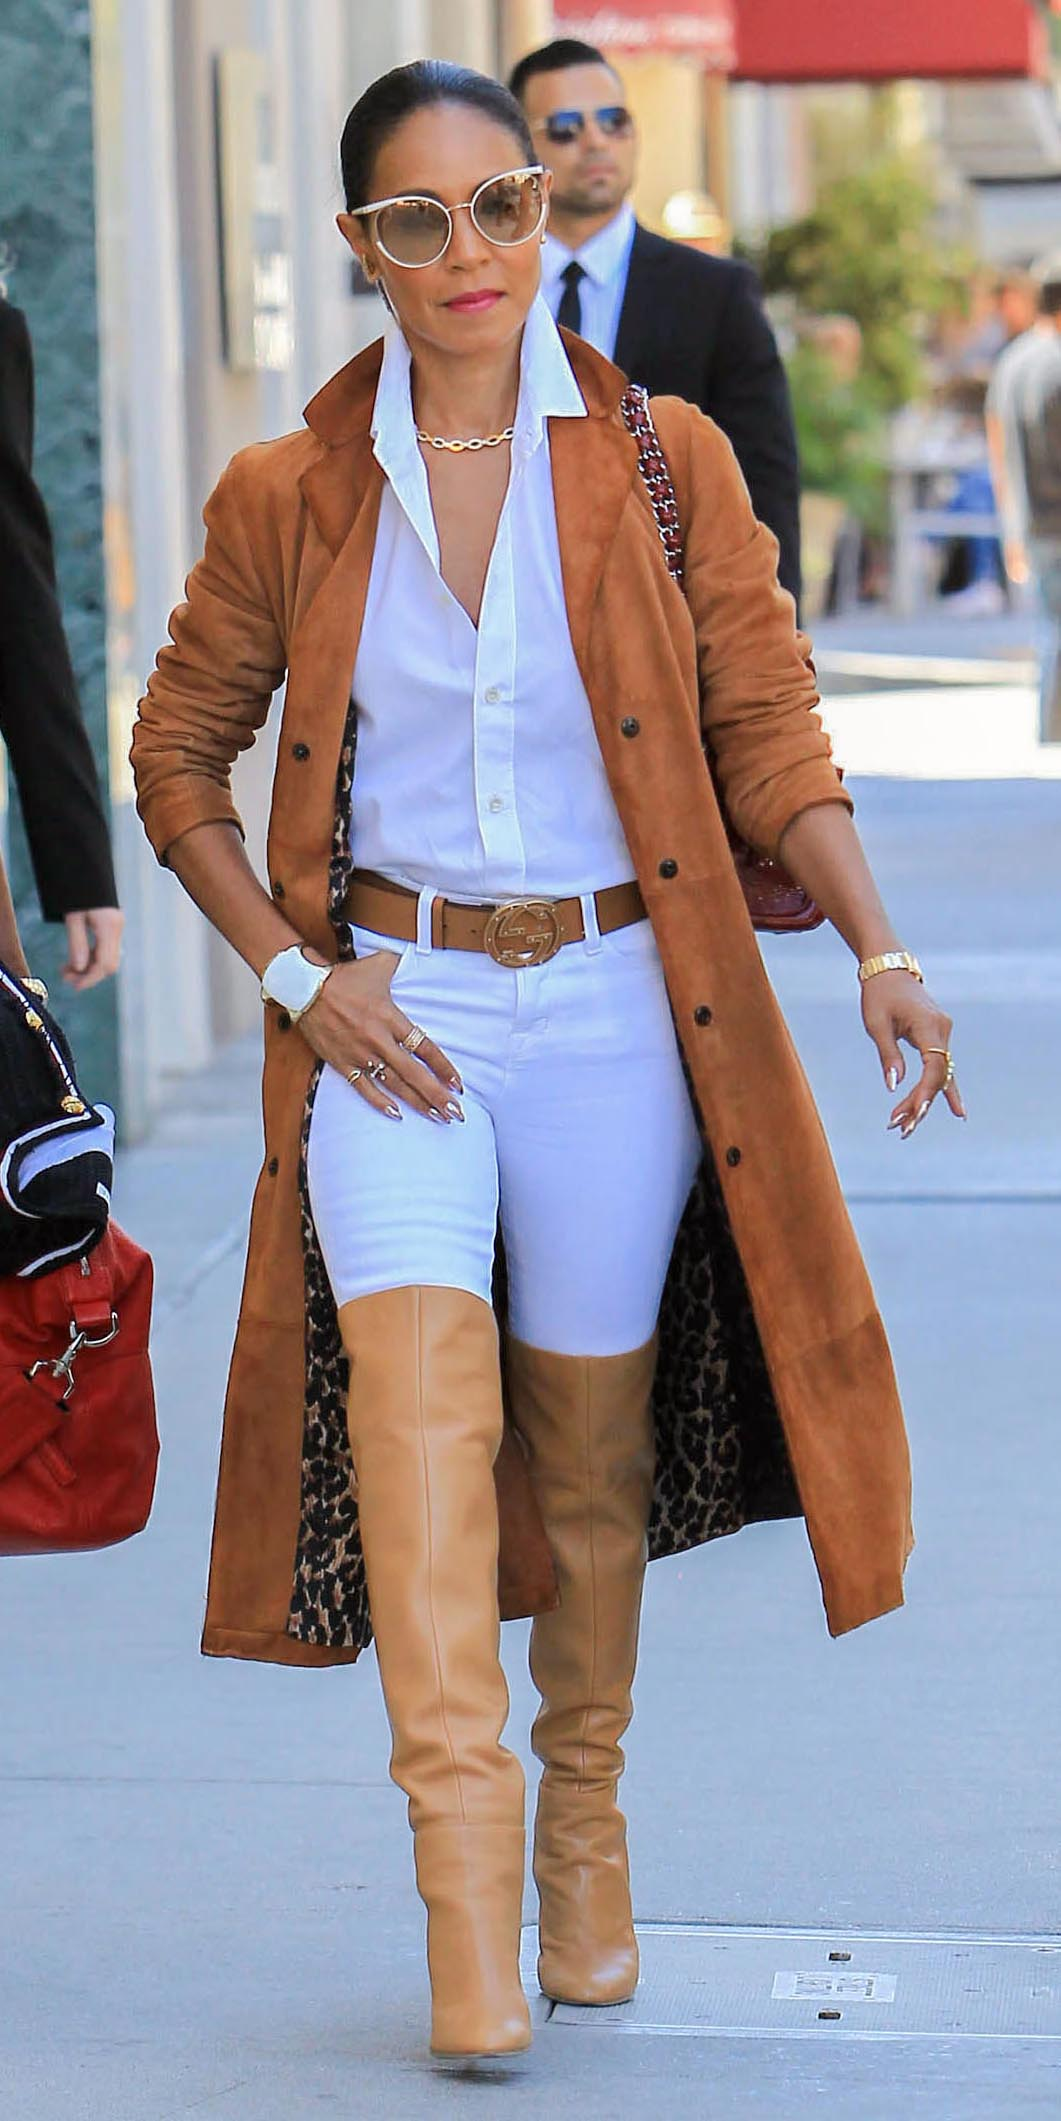 white-skinny-jeans-belt-white-collared-shirt-bun-sun-tan-shoe-boots-otk-suede-jadapinkettesmith-camel-jacket-coat-fall-winter-brun-lunch.jpg